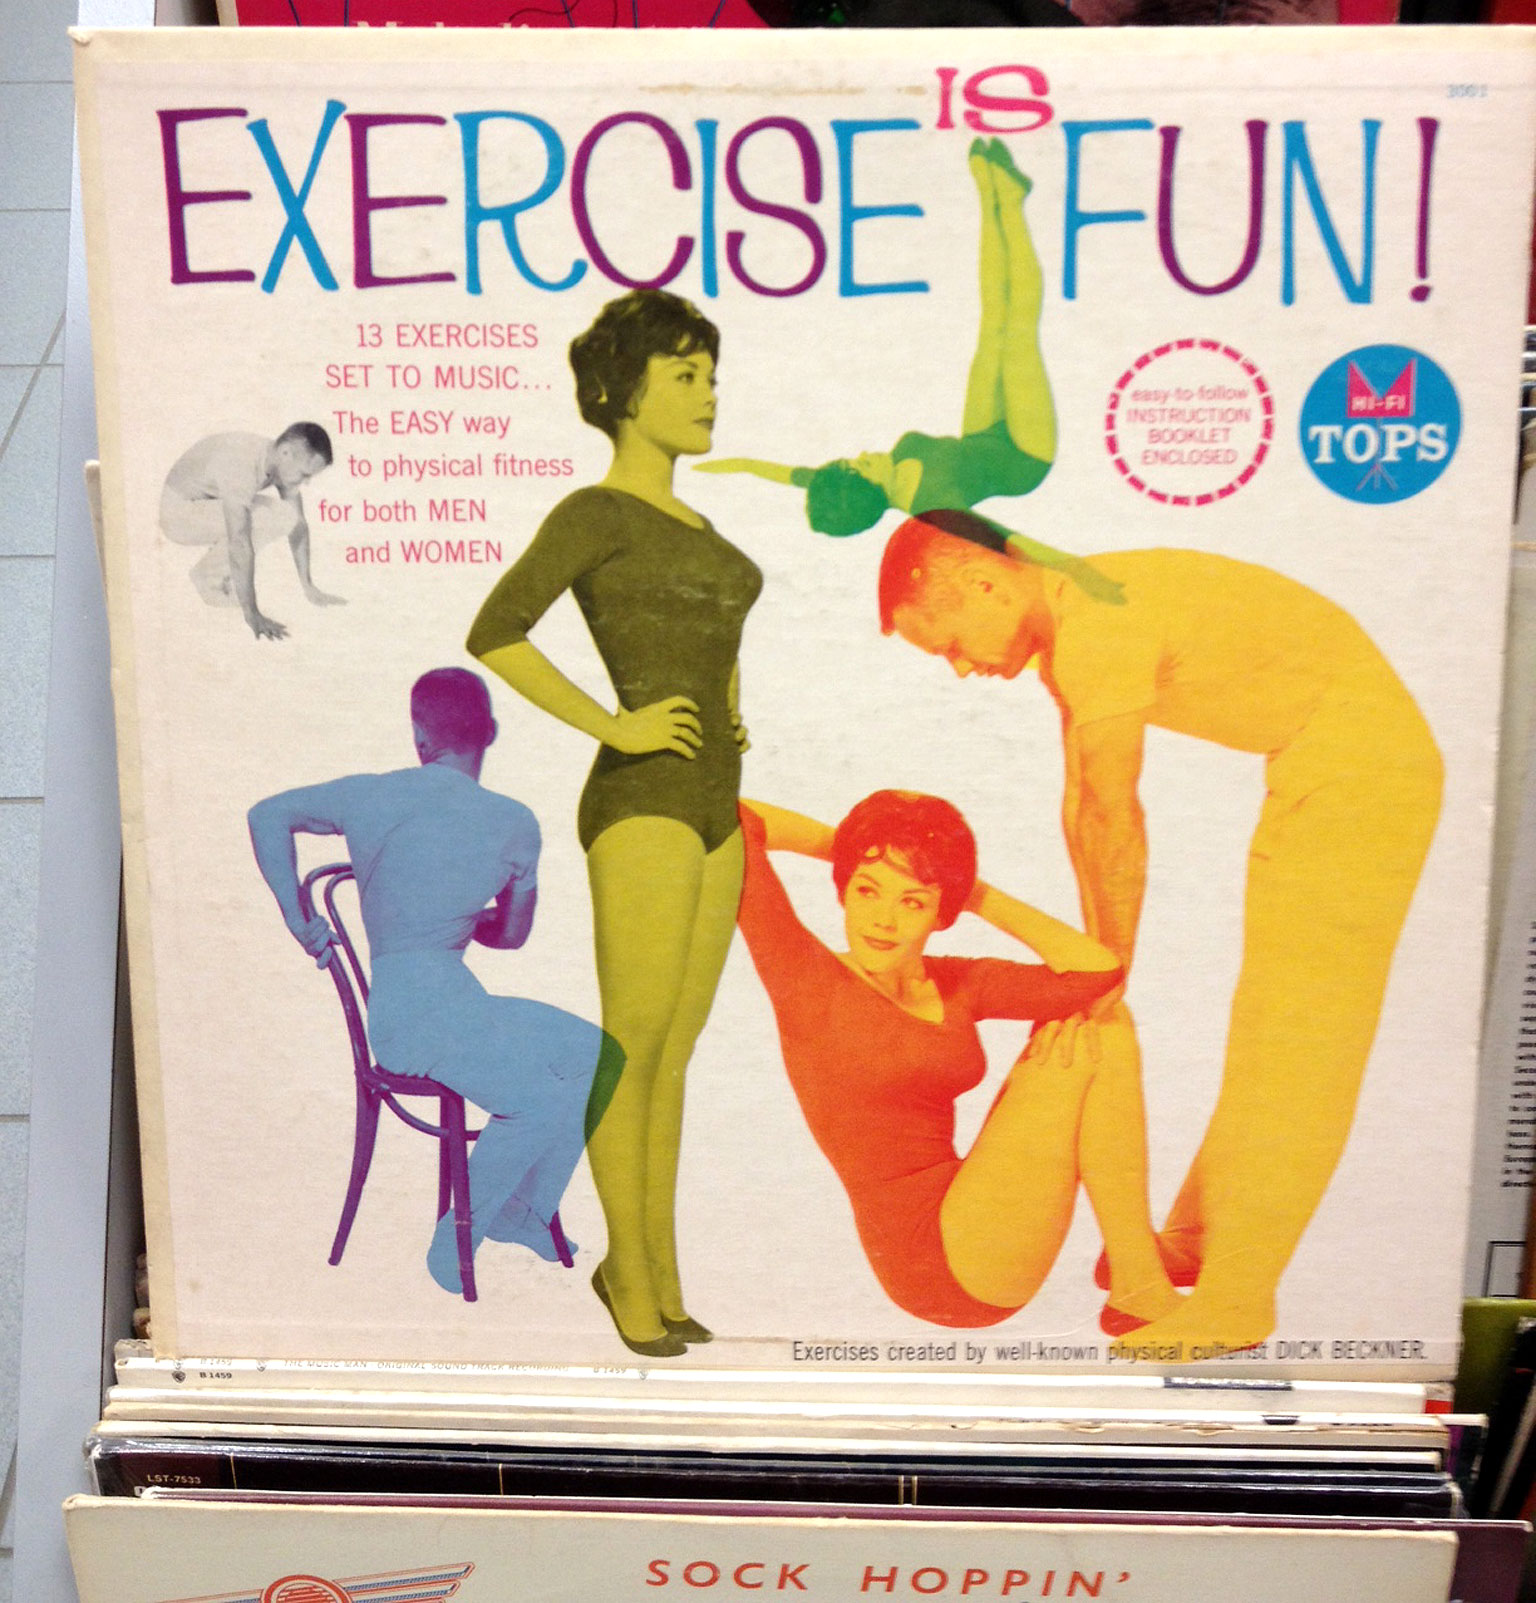 Excercise is Fun: $1